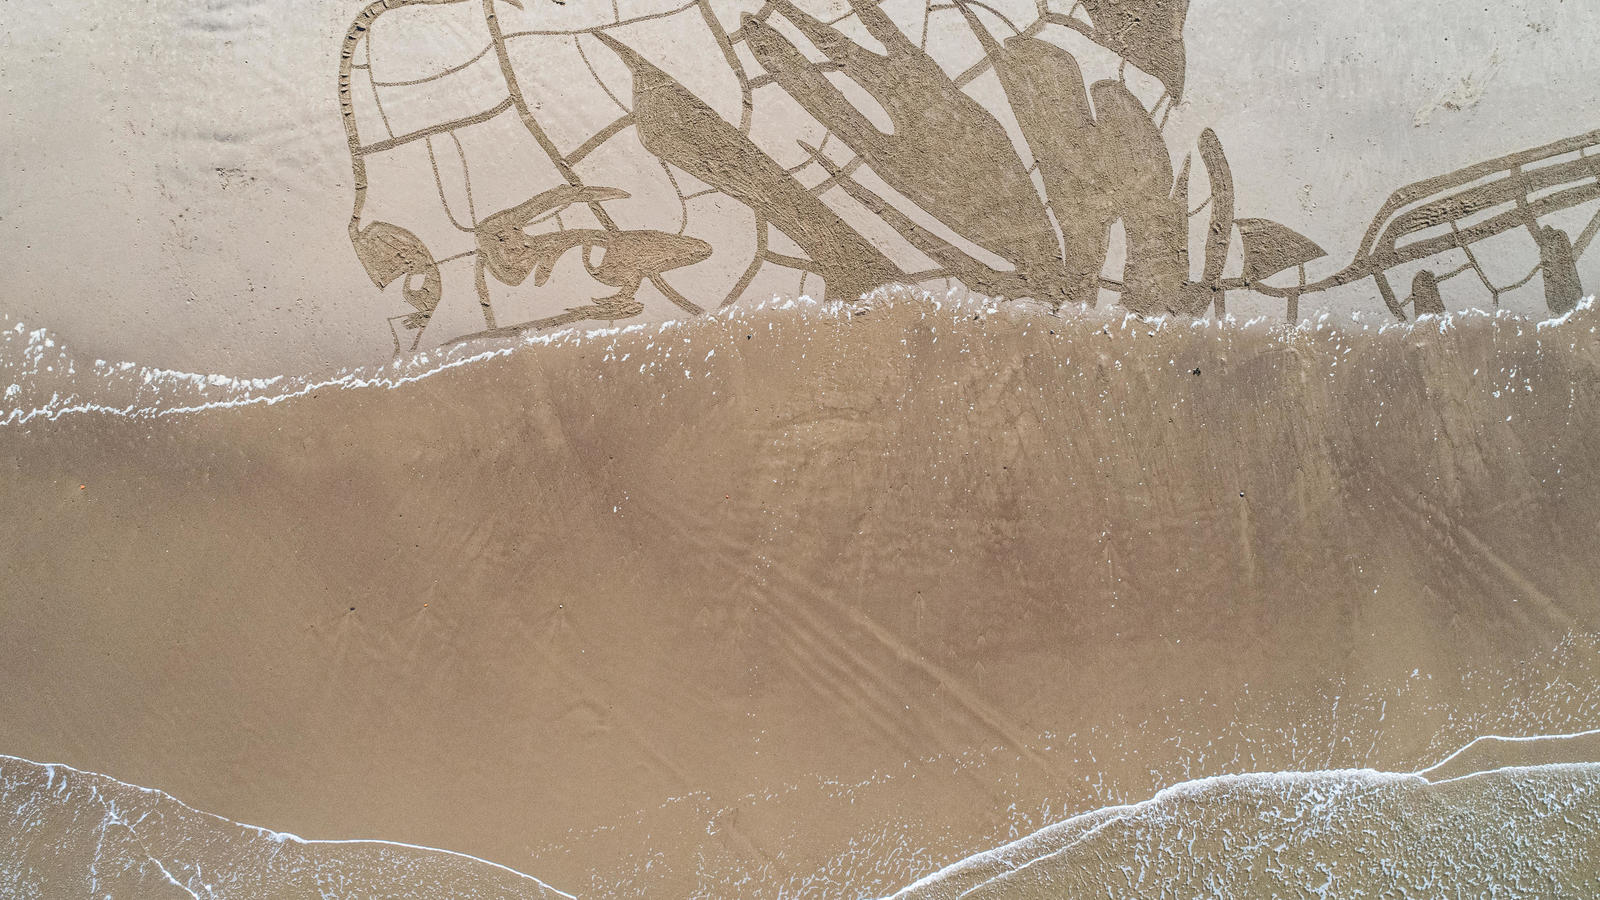 WaterAid created a giant sand portrait on Whitby Beach to show how climate change is impacting people's access to water and could make water perilously scarce for 1 in 4 children by 2040. March 2021